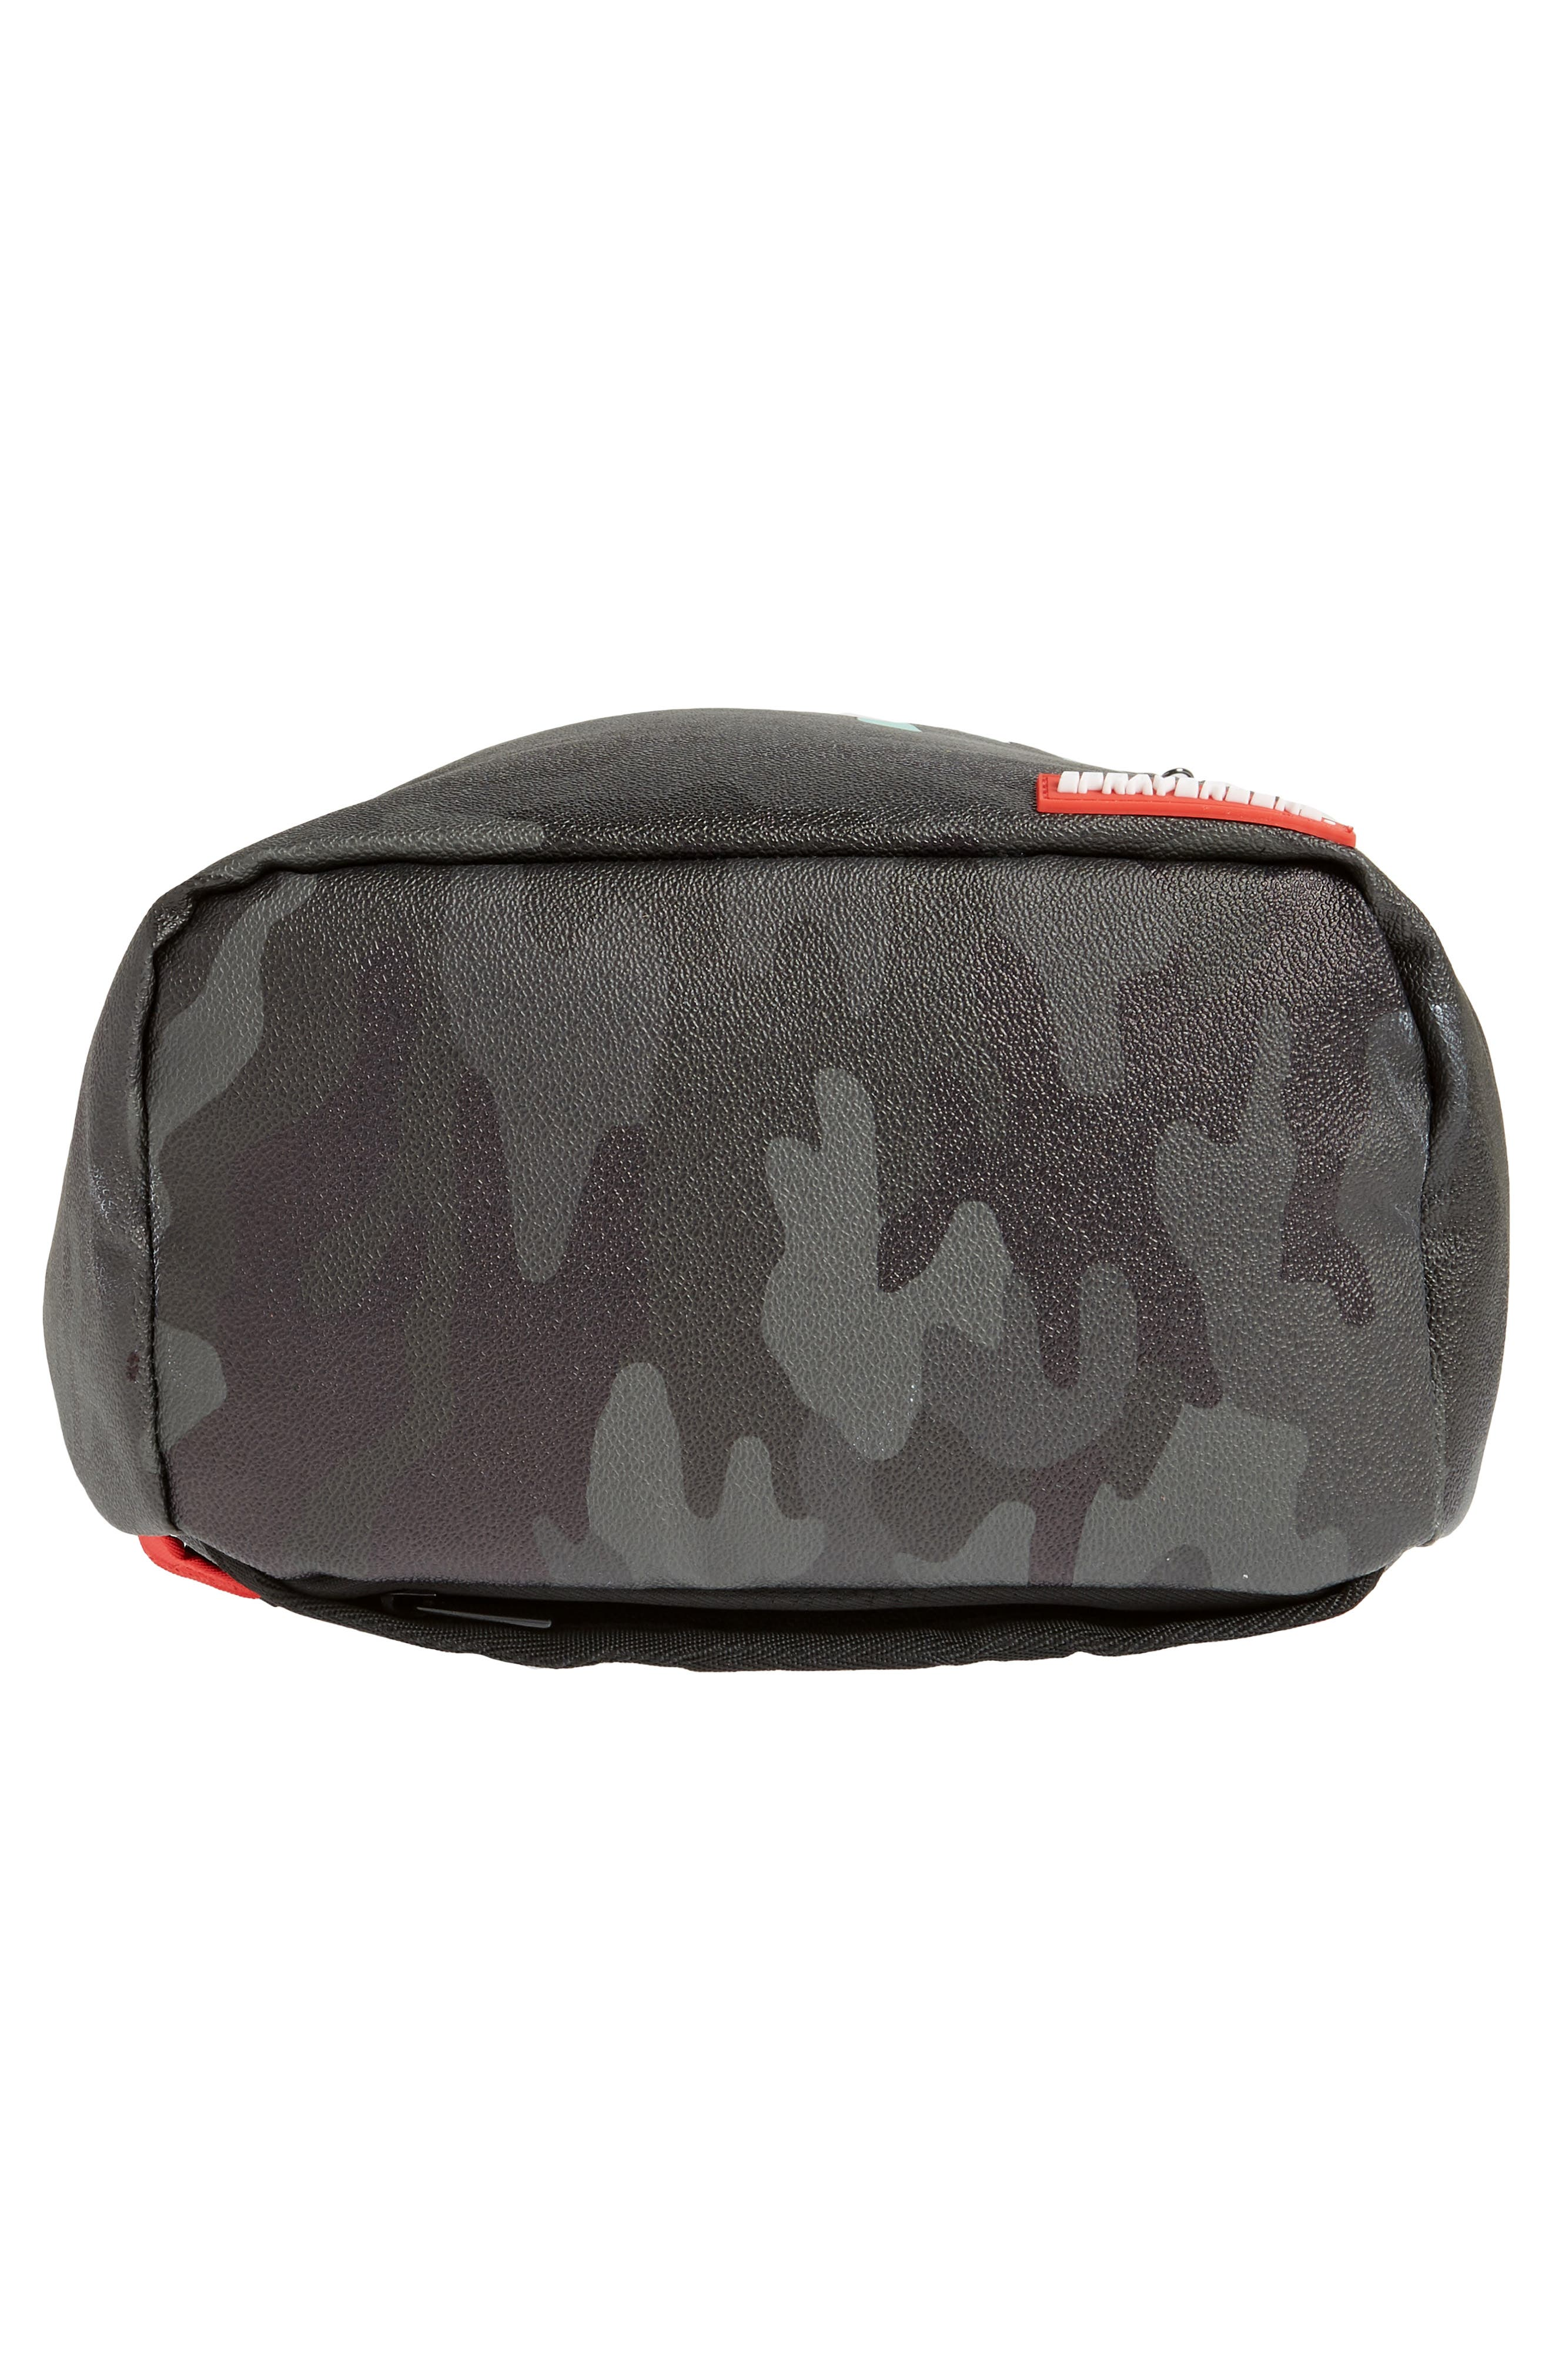 Tiff Drips Print Backpack,                             Alternate thumbnail 6, color,                             Camo/ Teal